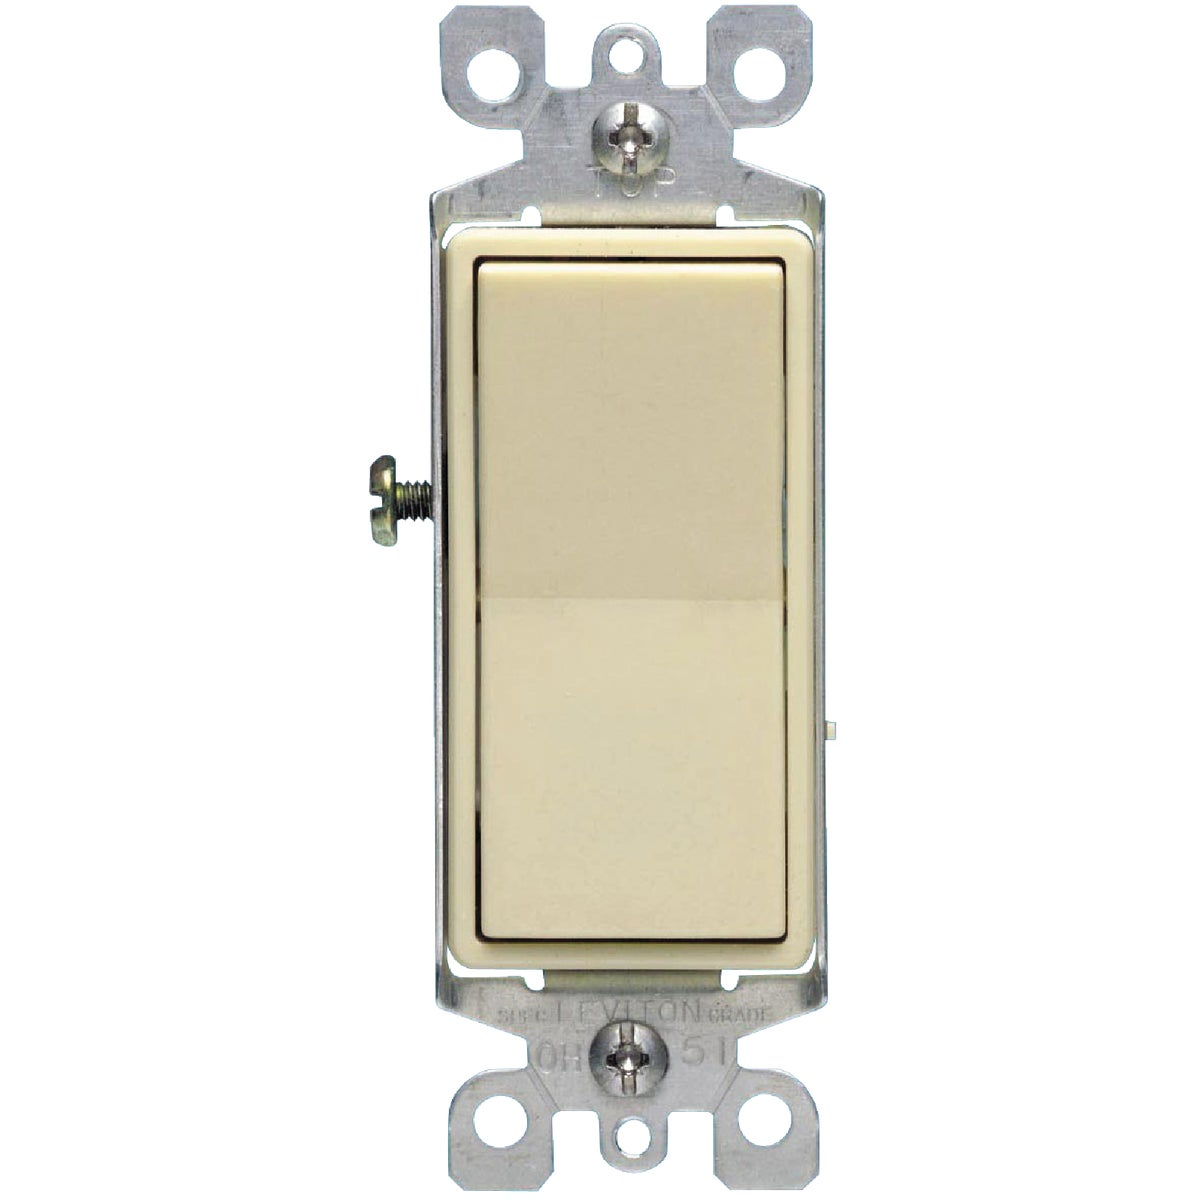 IV 4WAY GROUND SWITCH - 041-5604-ISP by Leviton Mfg Co